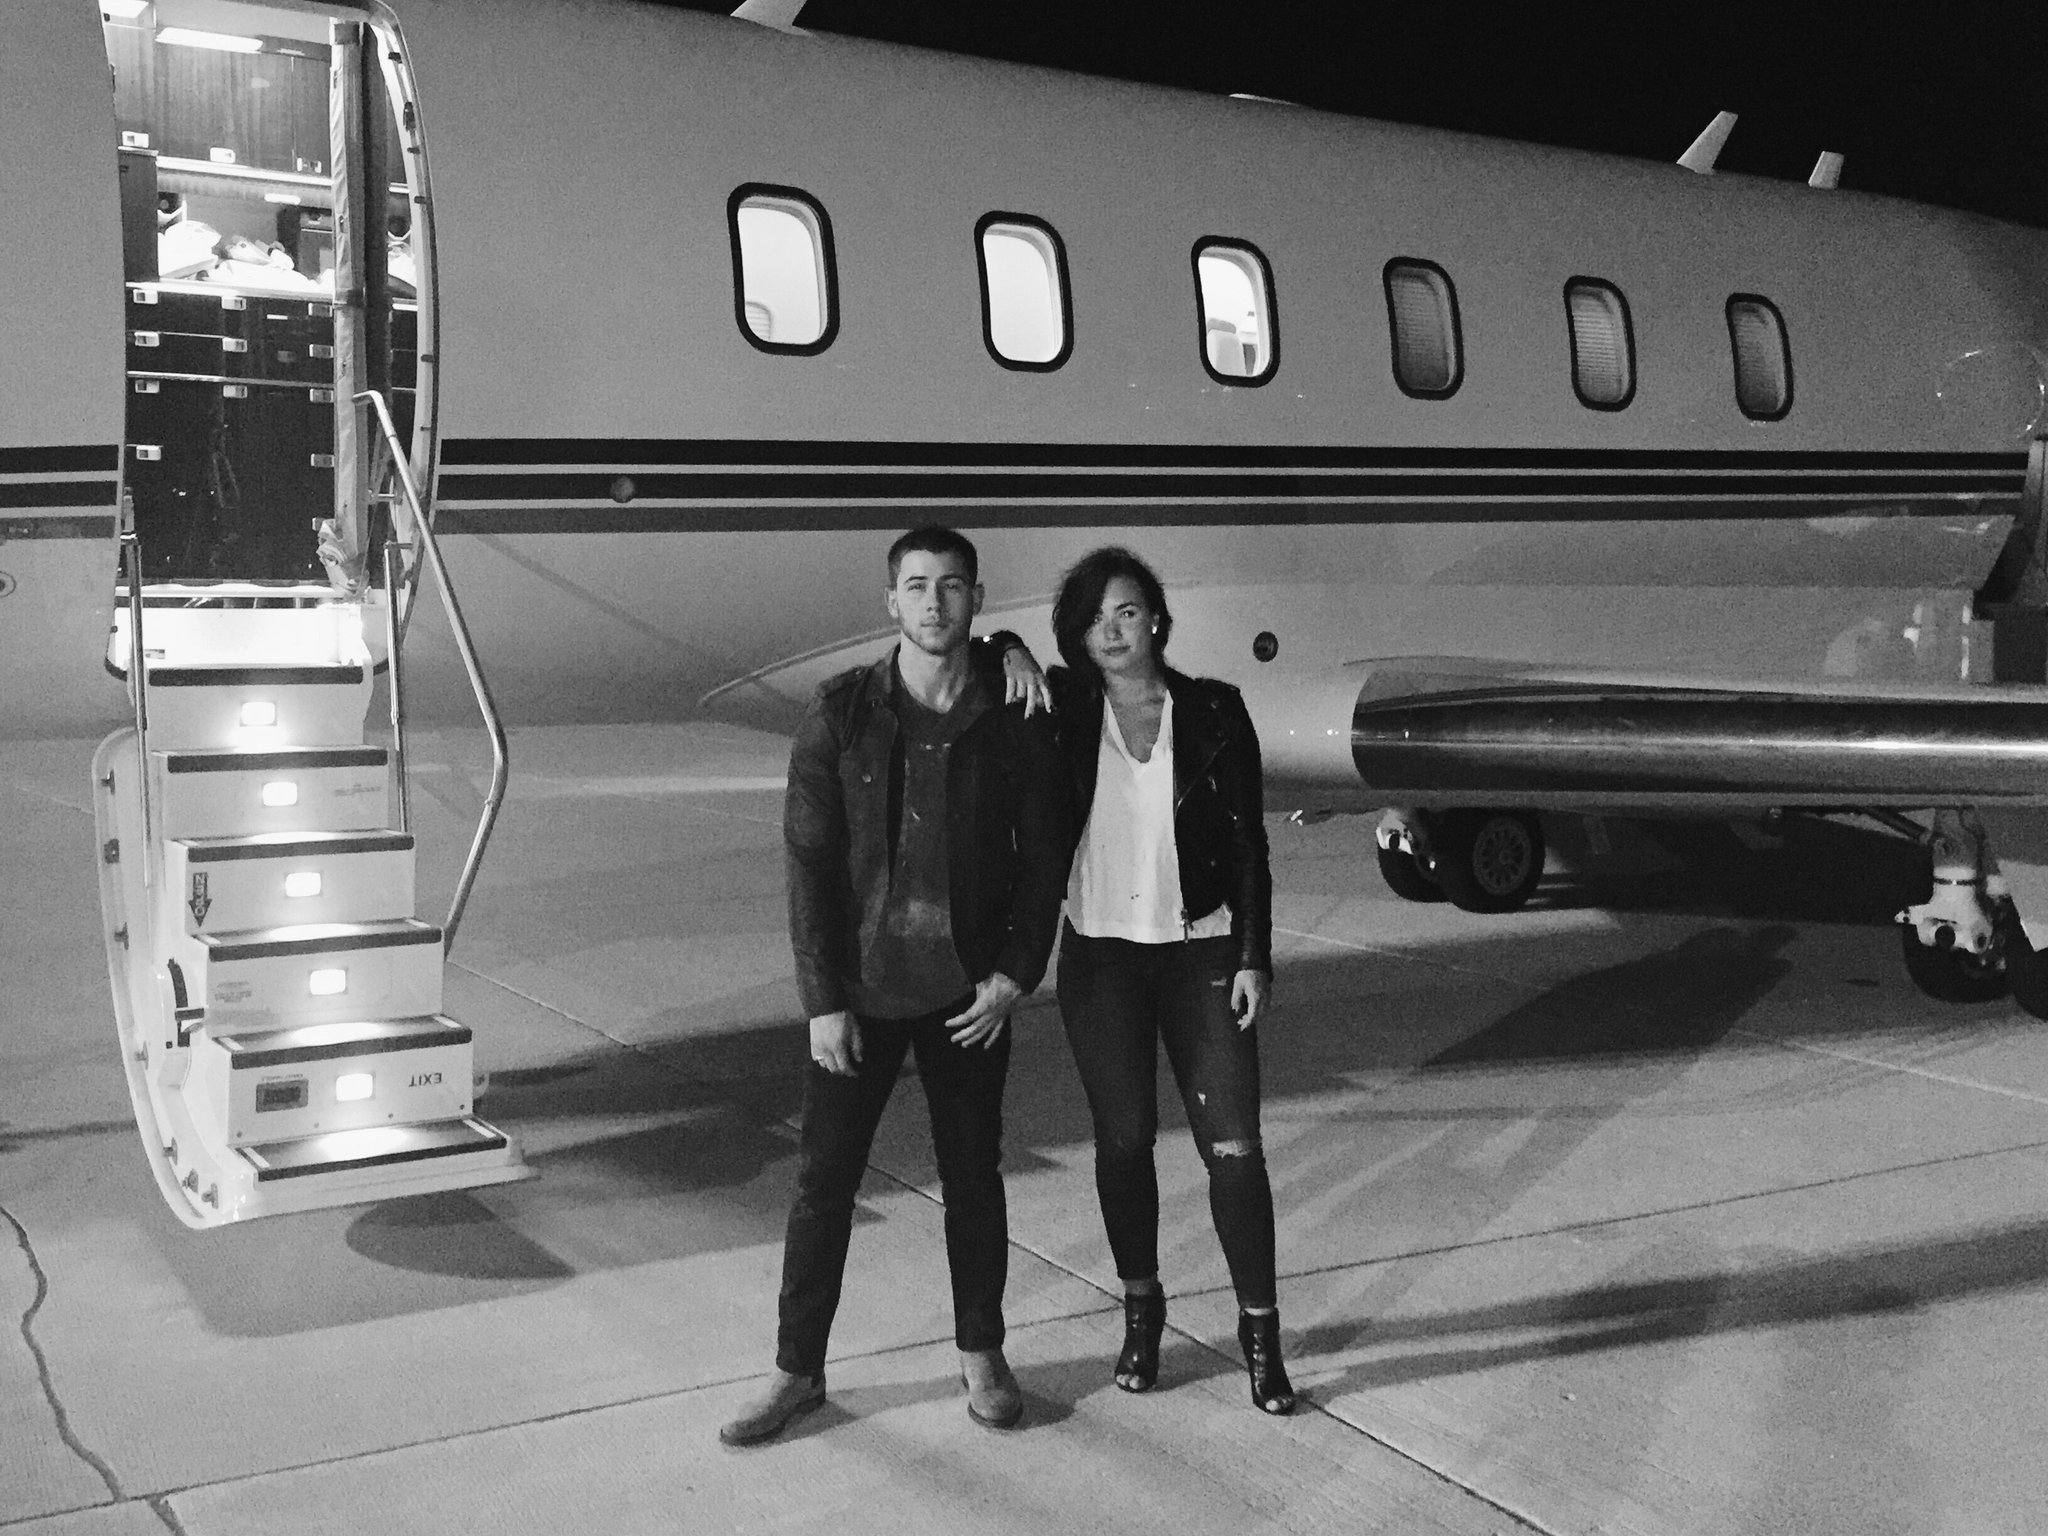 Big thanks to @netjets for getting @ddlovato and I to the #HondaCivicTour stops! See you tomorrow St. Louis https://t.co/wGe2iXtMYv